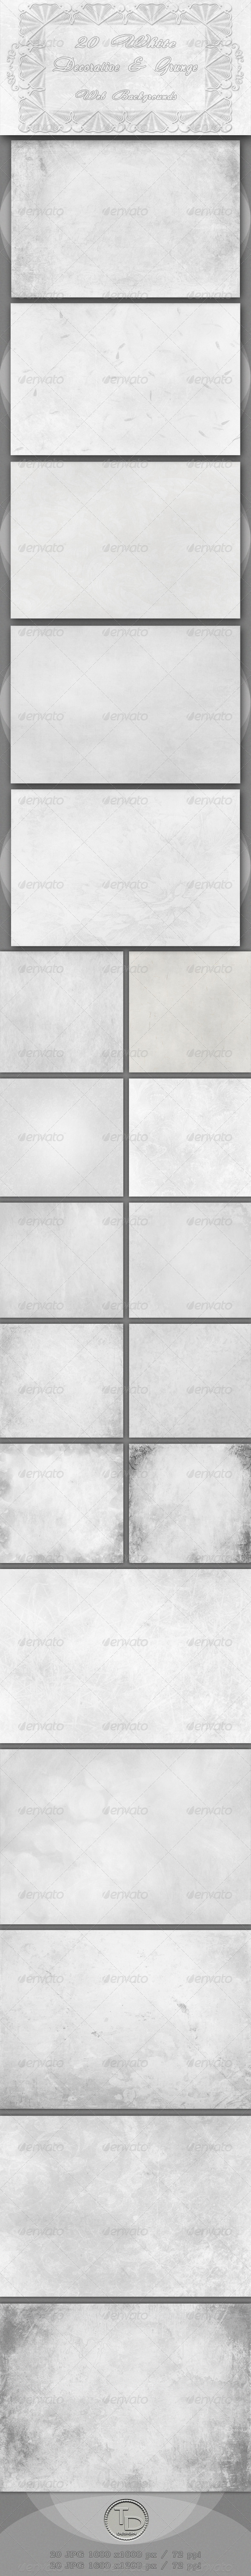 GraphicRiver 20 White Decorative and Grunge Web Backgrounds 2688449